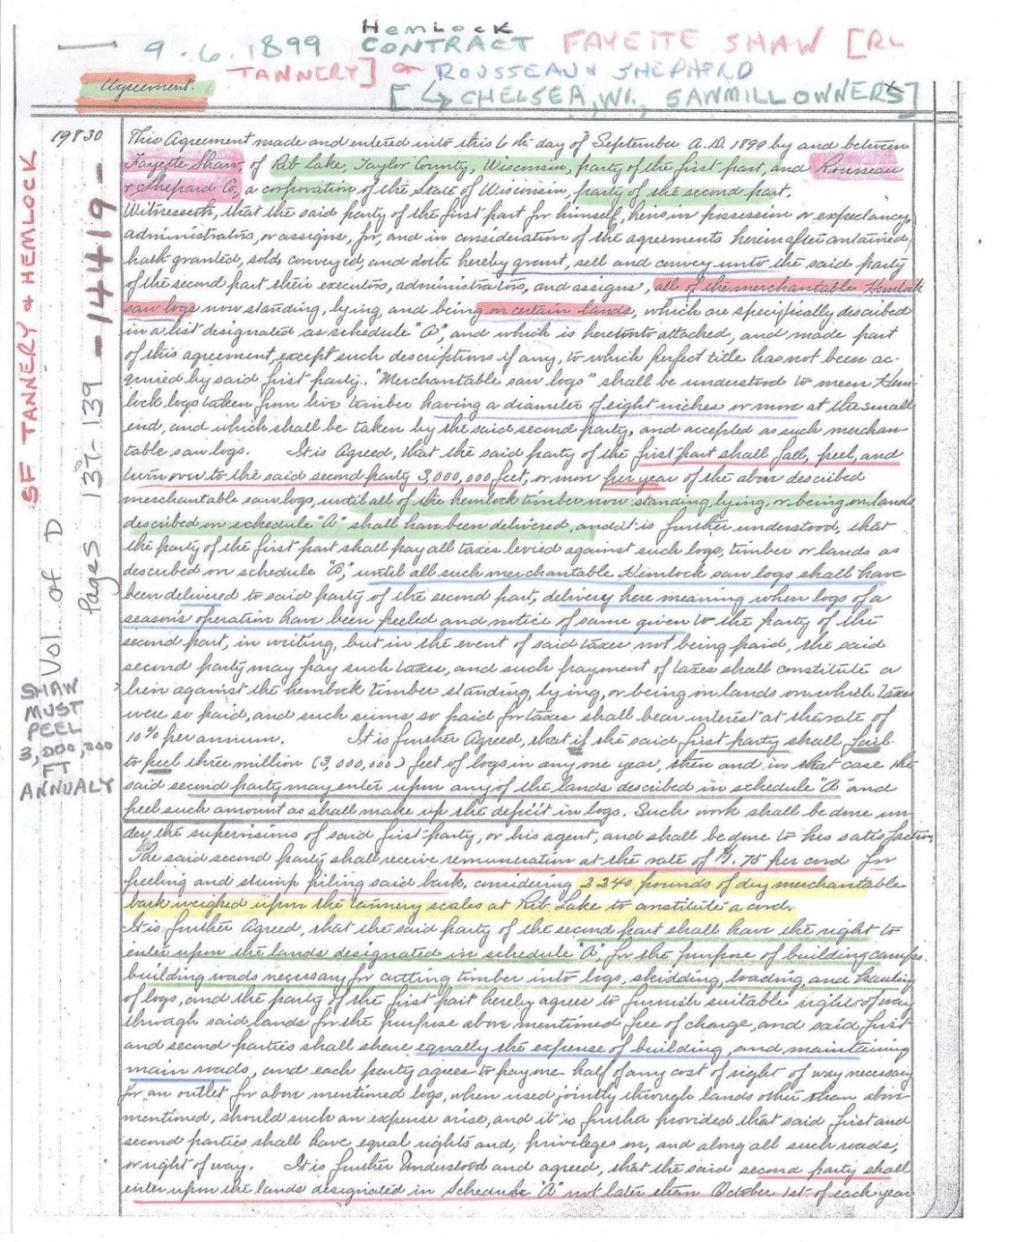 C:\Users\Robert P. Rusch\Documents\My PaperPort Documents\Samples\Photograph (9).jpg